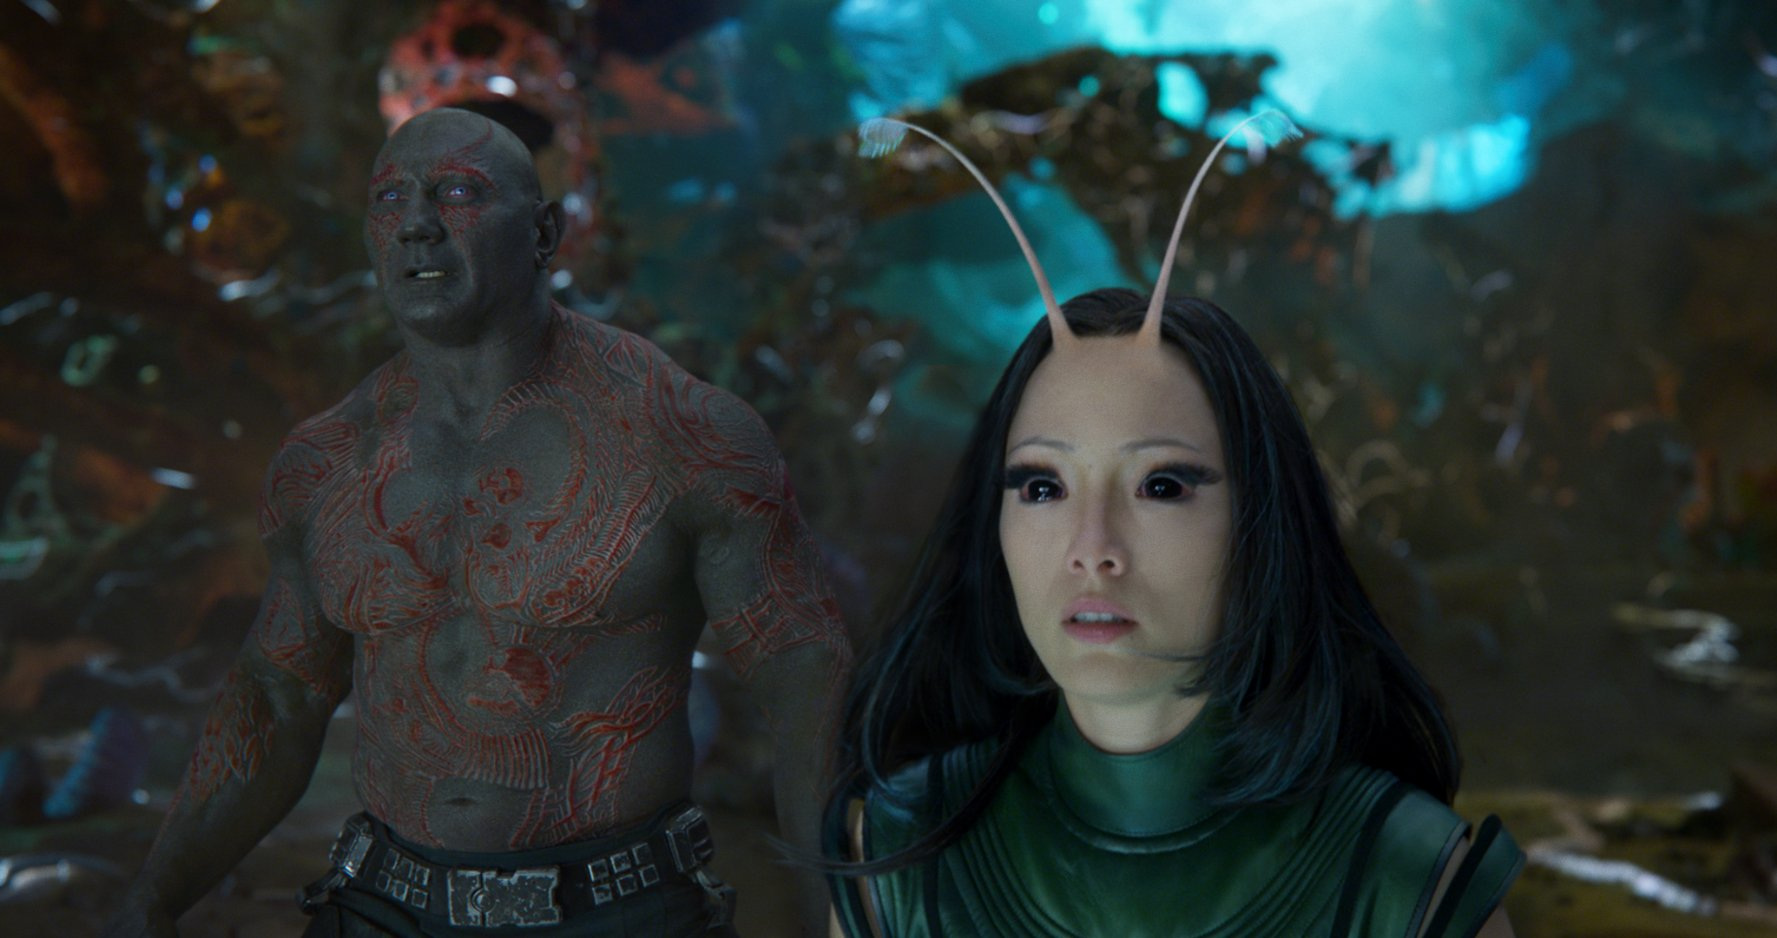 (3) film-chuvari-na-galaksijata-2-guardians-of-the-galaxy-vol-2-www.kafepauza.mk